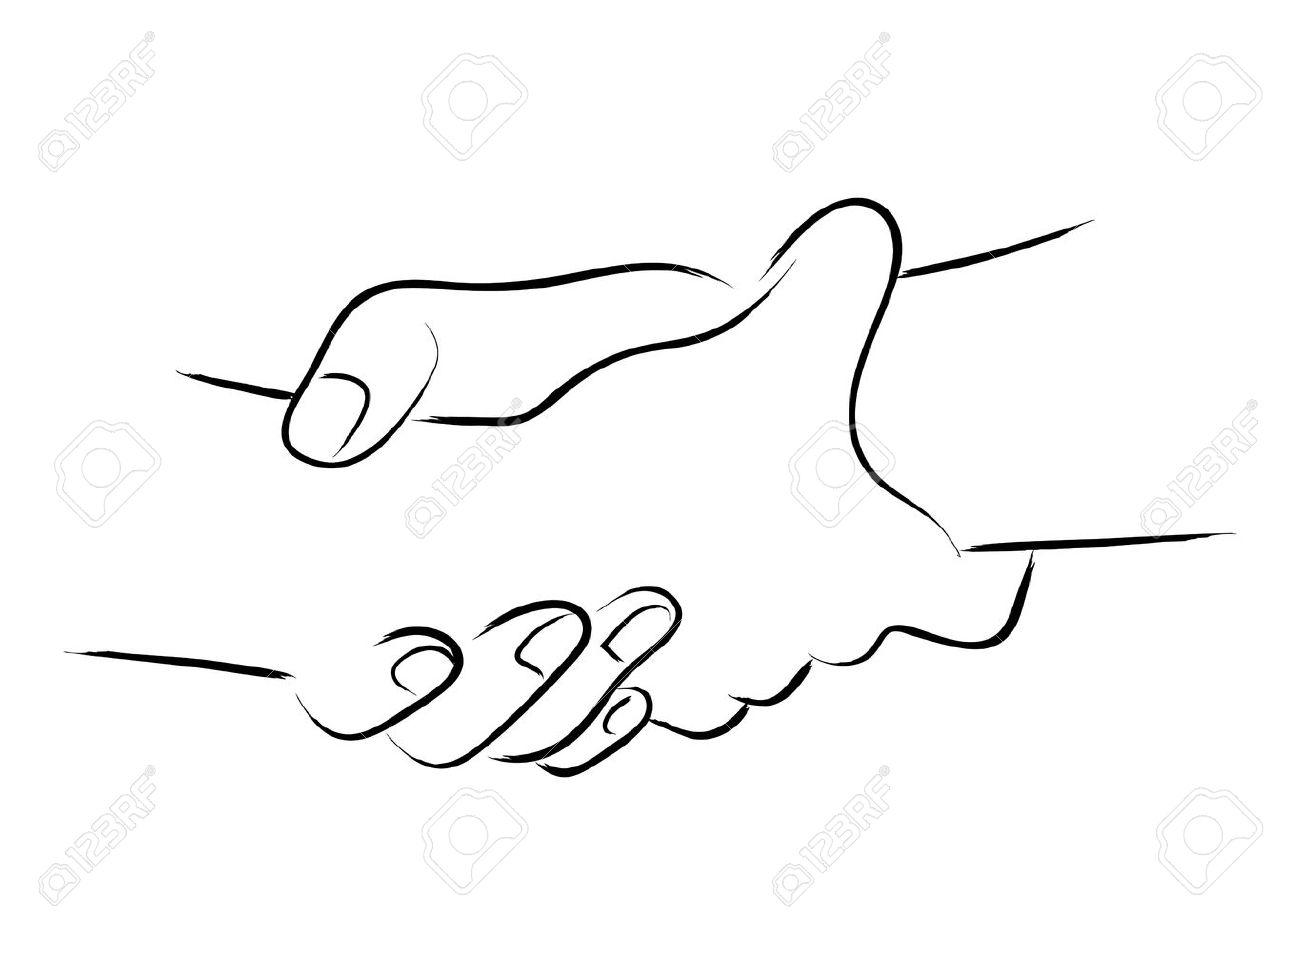 Simple line art of two hands holding each other strongly.